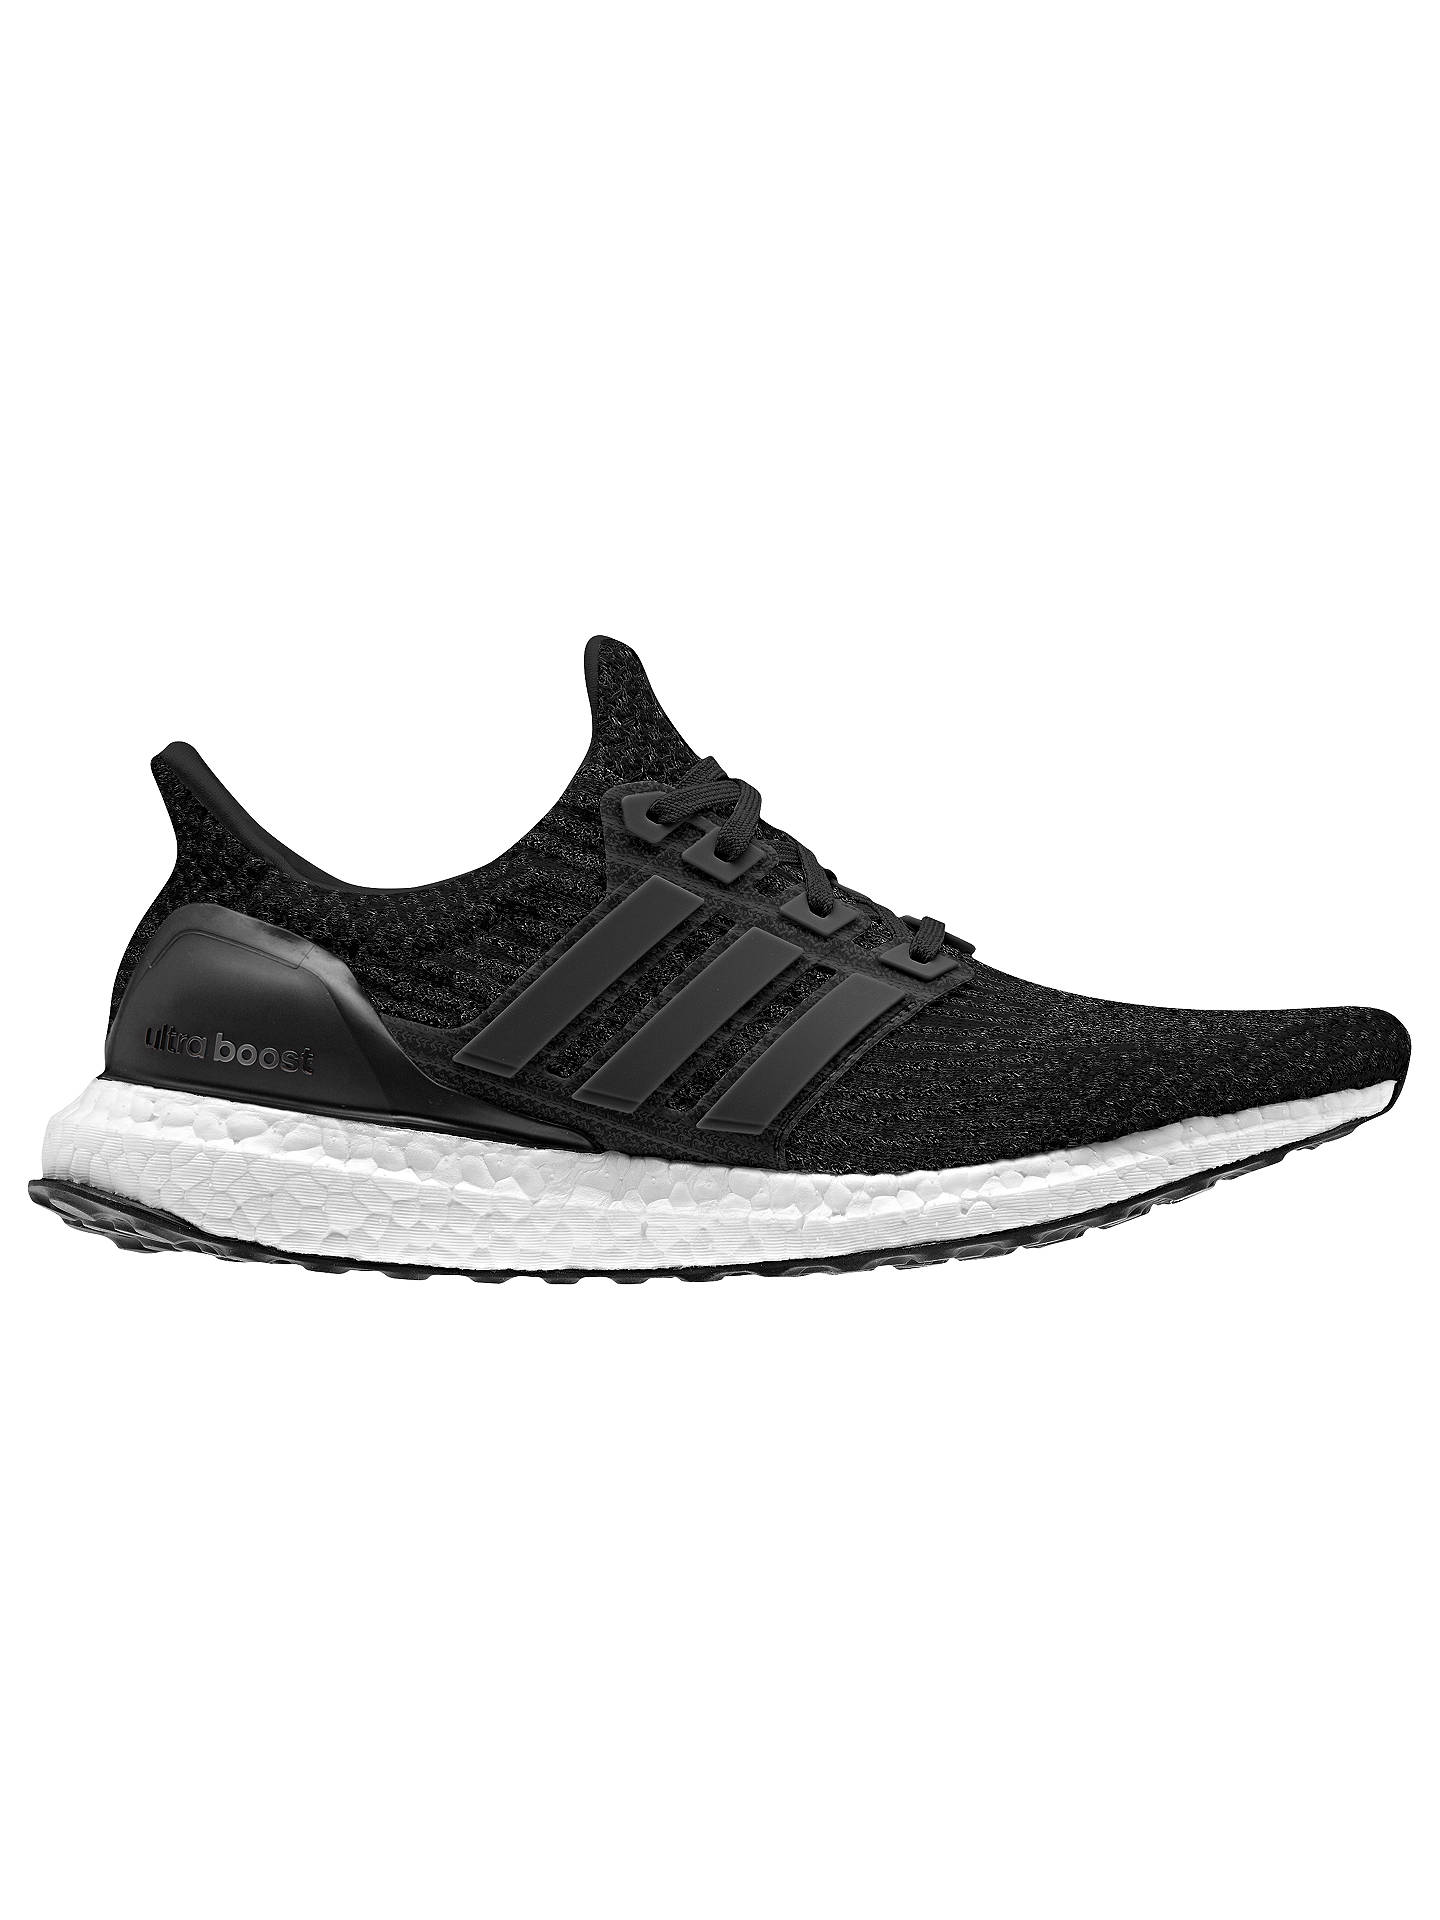 bc76c95ee8a adidas Ultra Boost Women's Running Shoes, Core Black/Dark Grey at ...